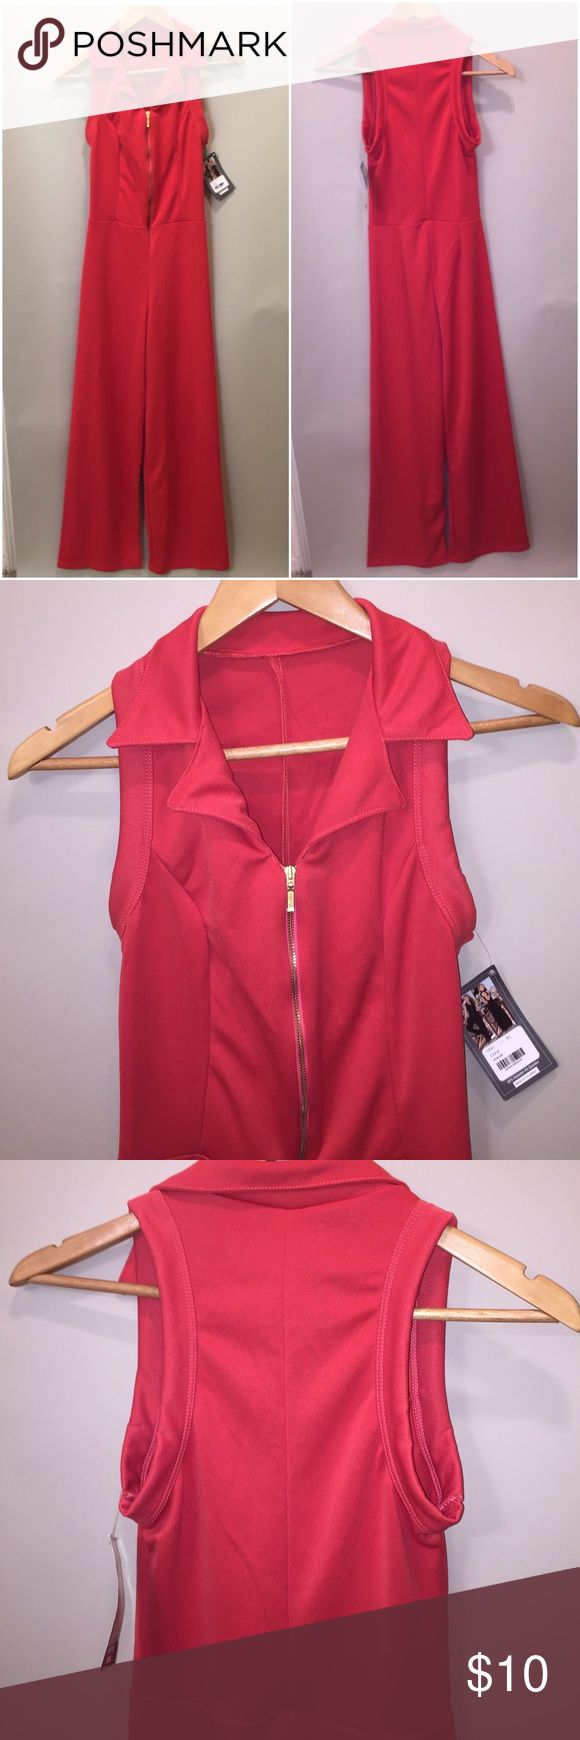 NWT Front Zip Jumpsuit Full disclosure, this thing says XL... XL in the land of skeletons perhaps. This is more proportional to a women's Small/Medium. Perhaps a 4 or 6 dress size. Stretchy but not enough for my size 12 butt. Good luck to you! AM:PM Pants Jumpsuits & Rompers